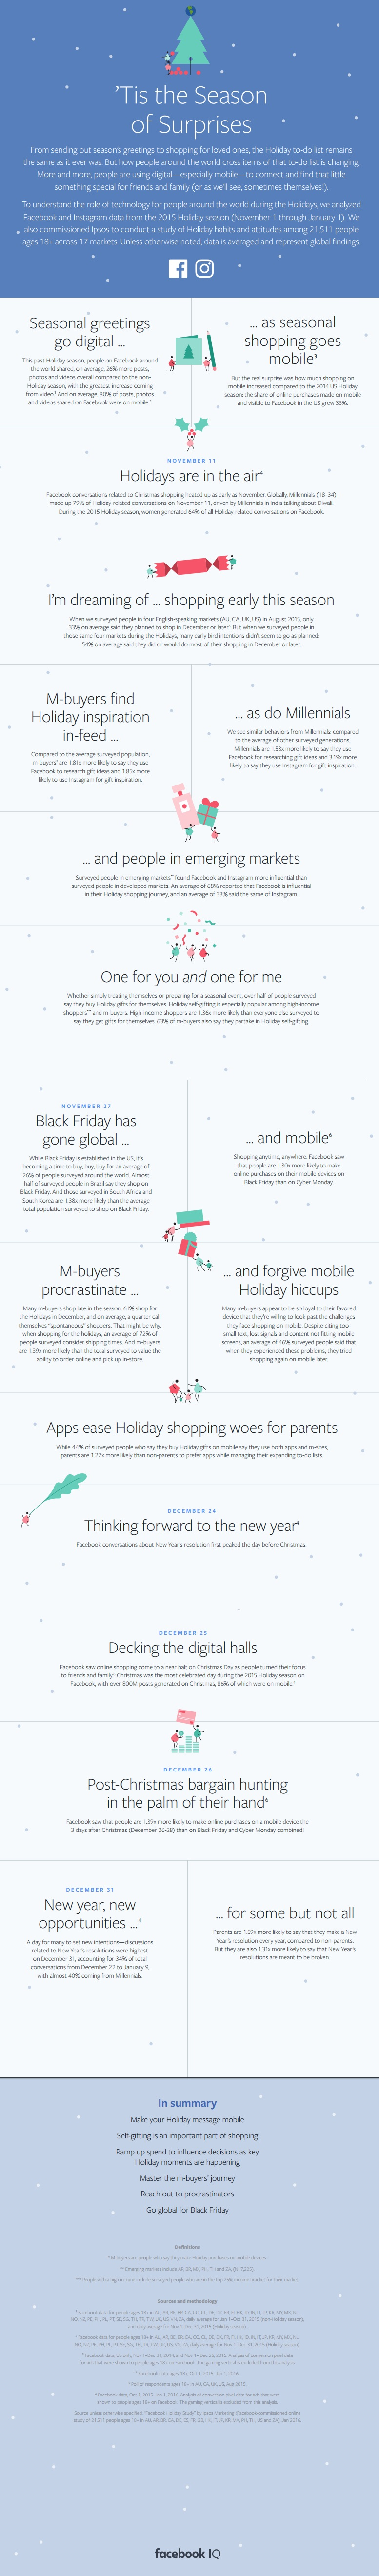 Holiday Marketing: Facebook Tells You 10 Dates When Conversions Spike [Infographic]